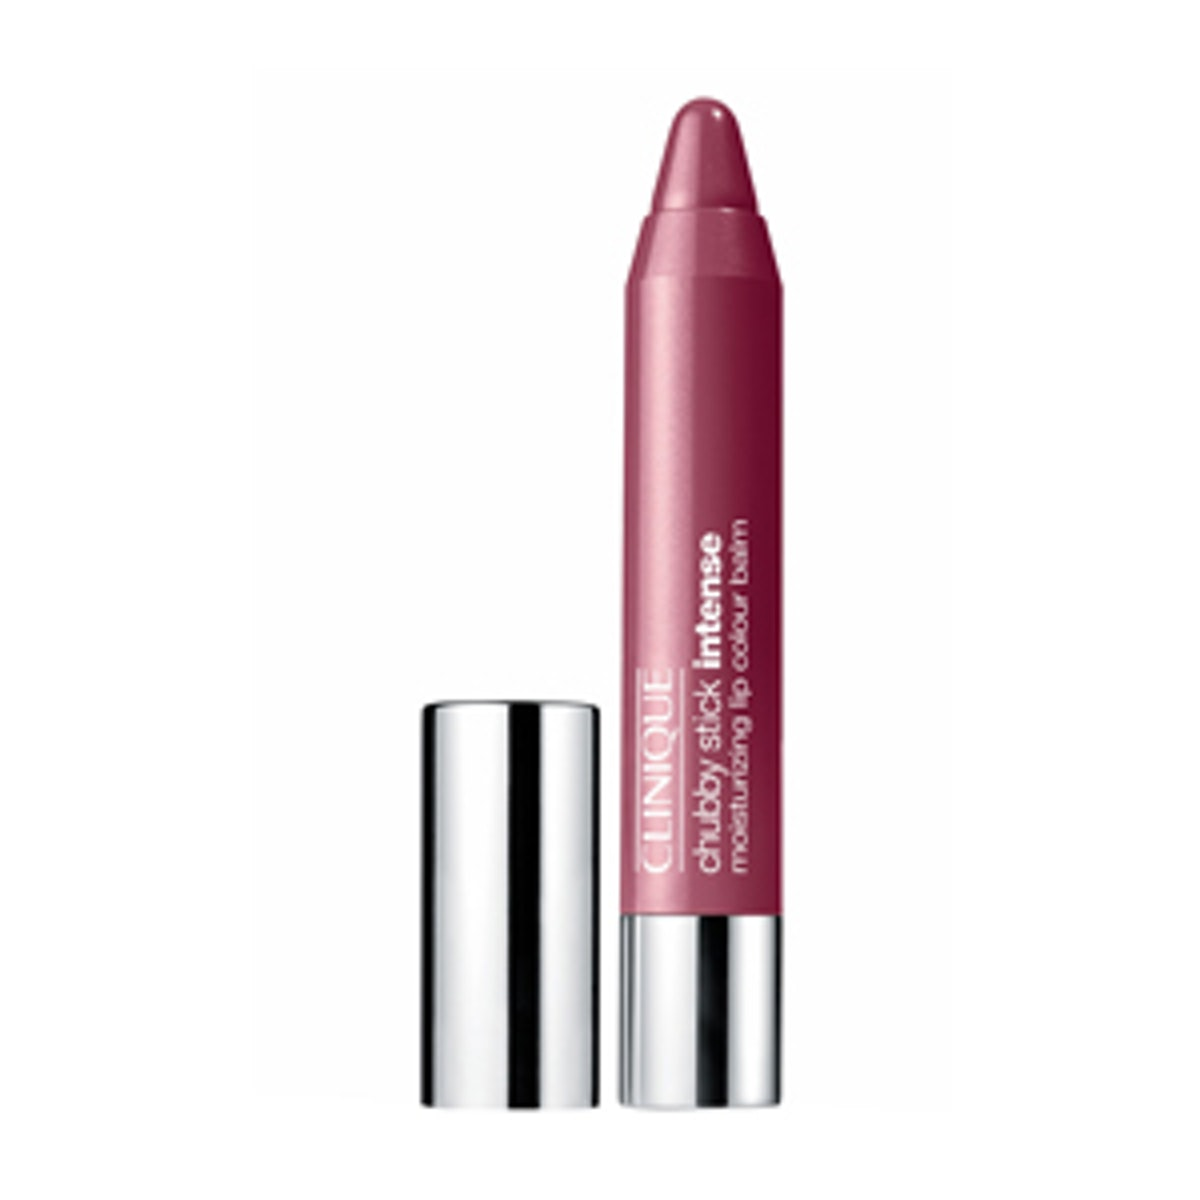 Chubby Stick Moisturizing Lip Color in Broadest Berry